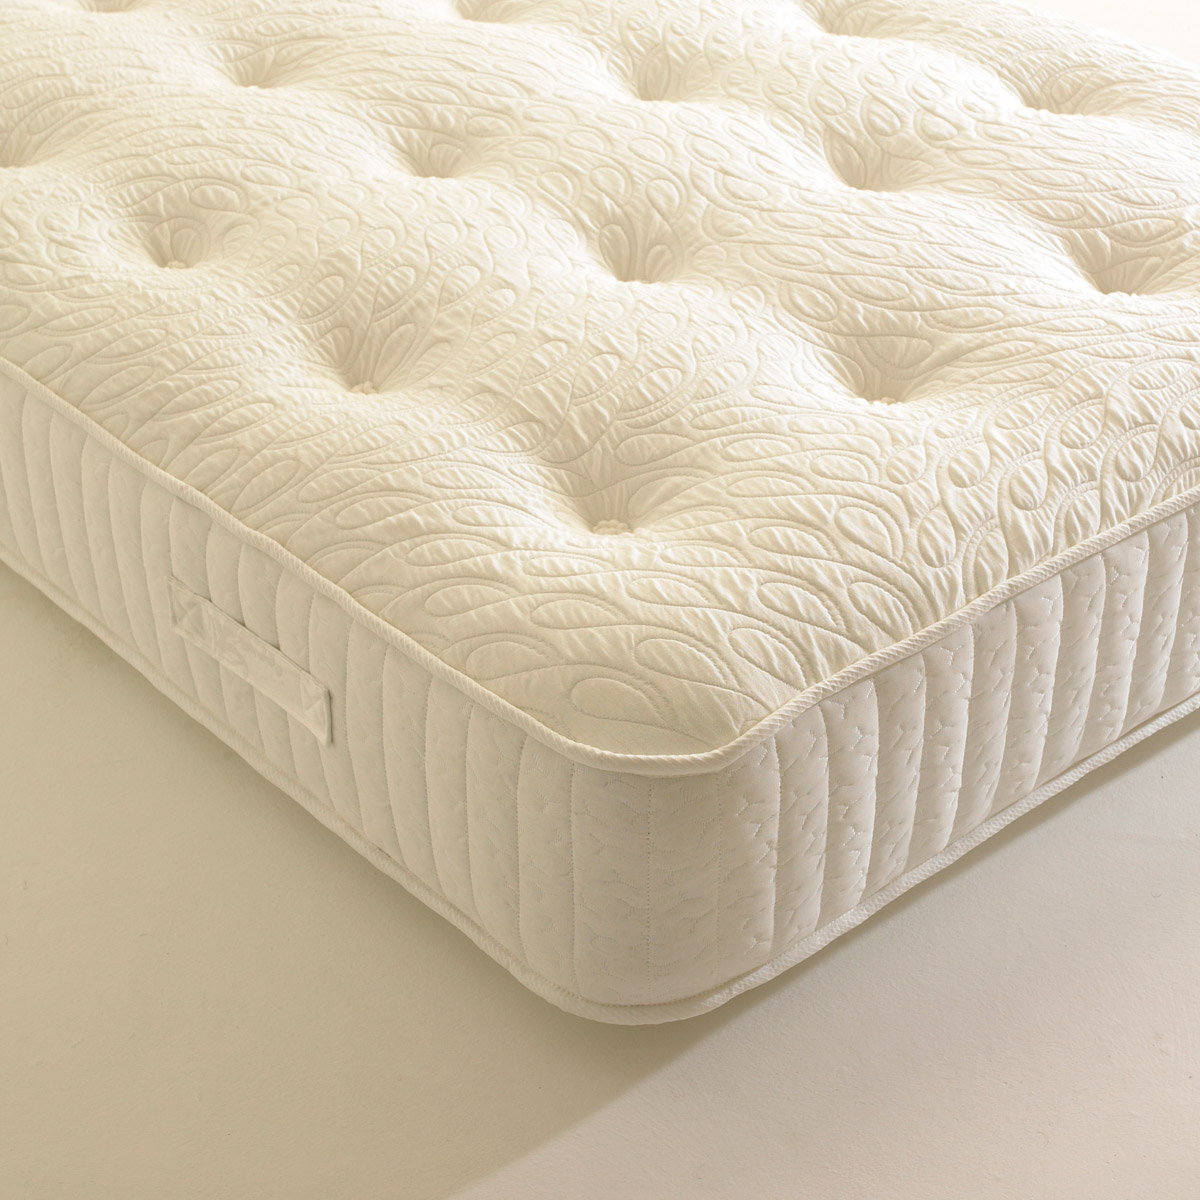 Shire Beds Eco Drift Anti Bug Mattress from £249